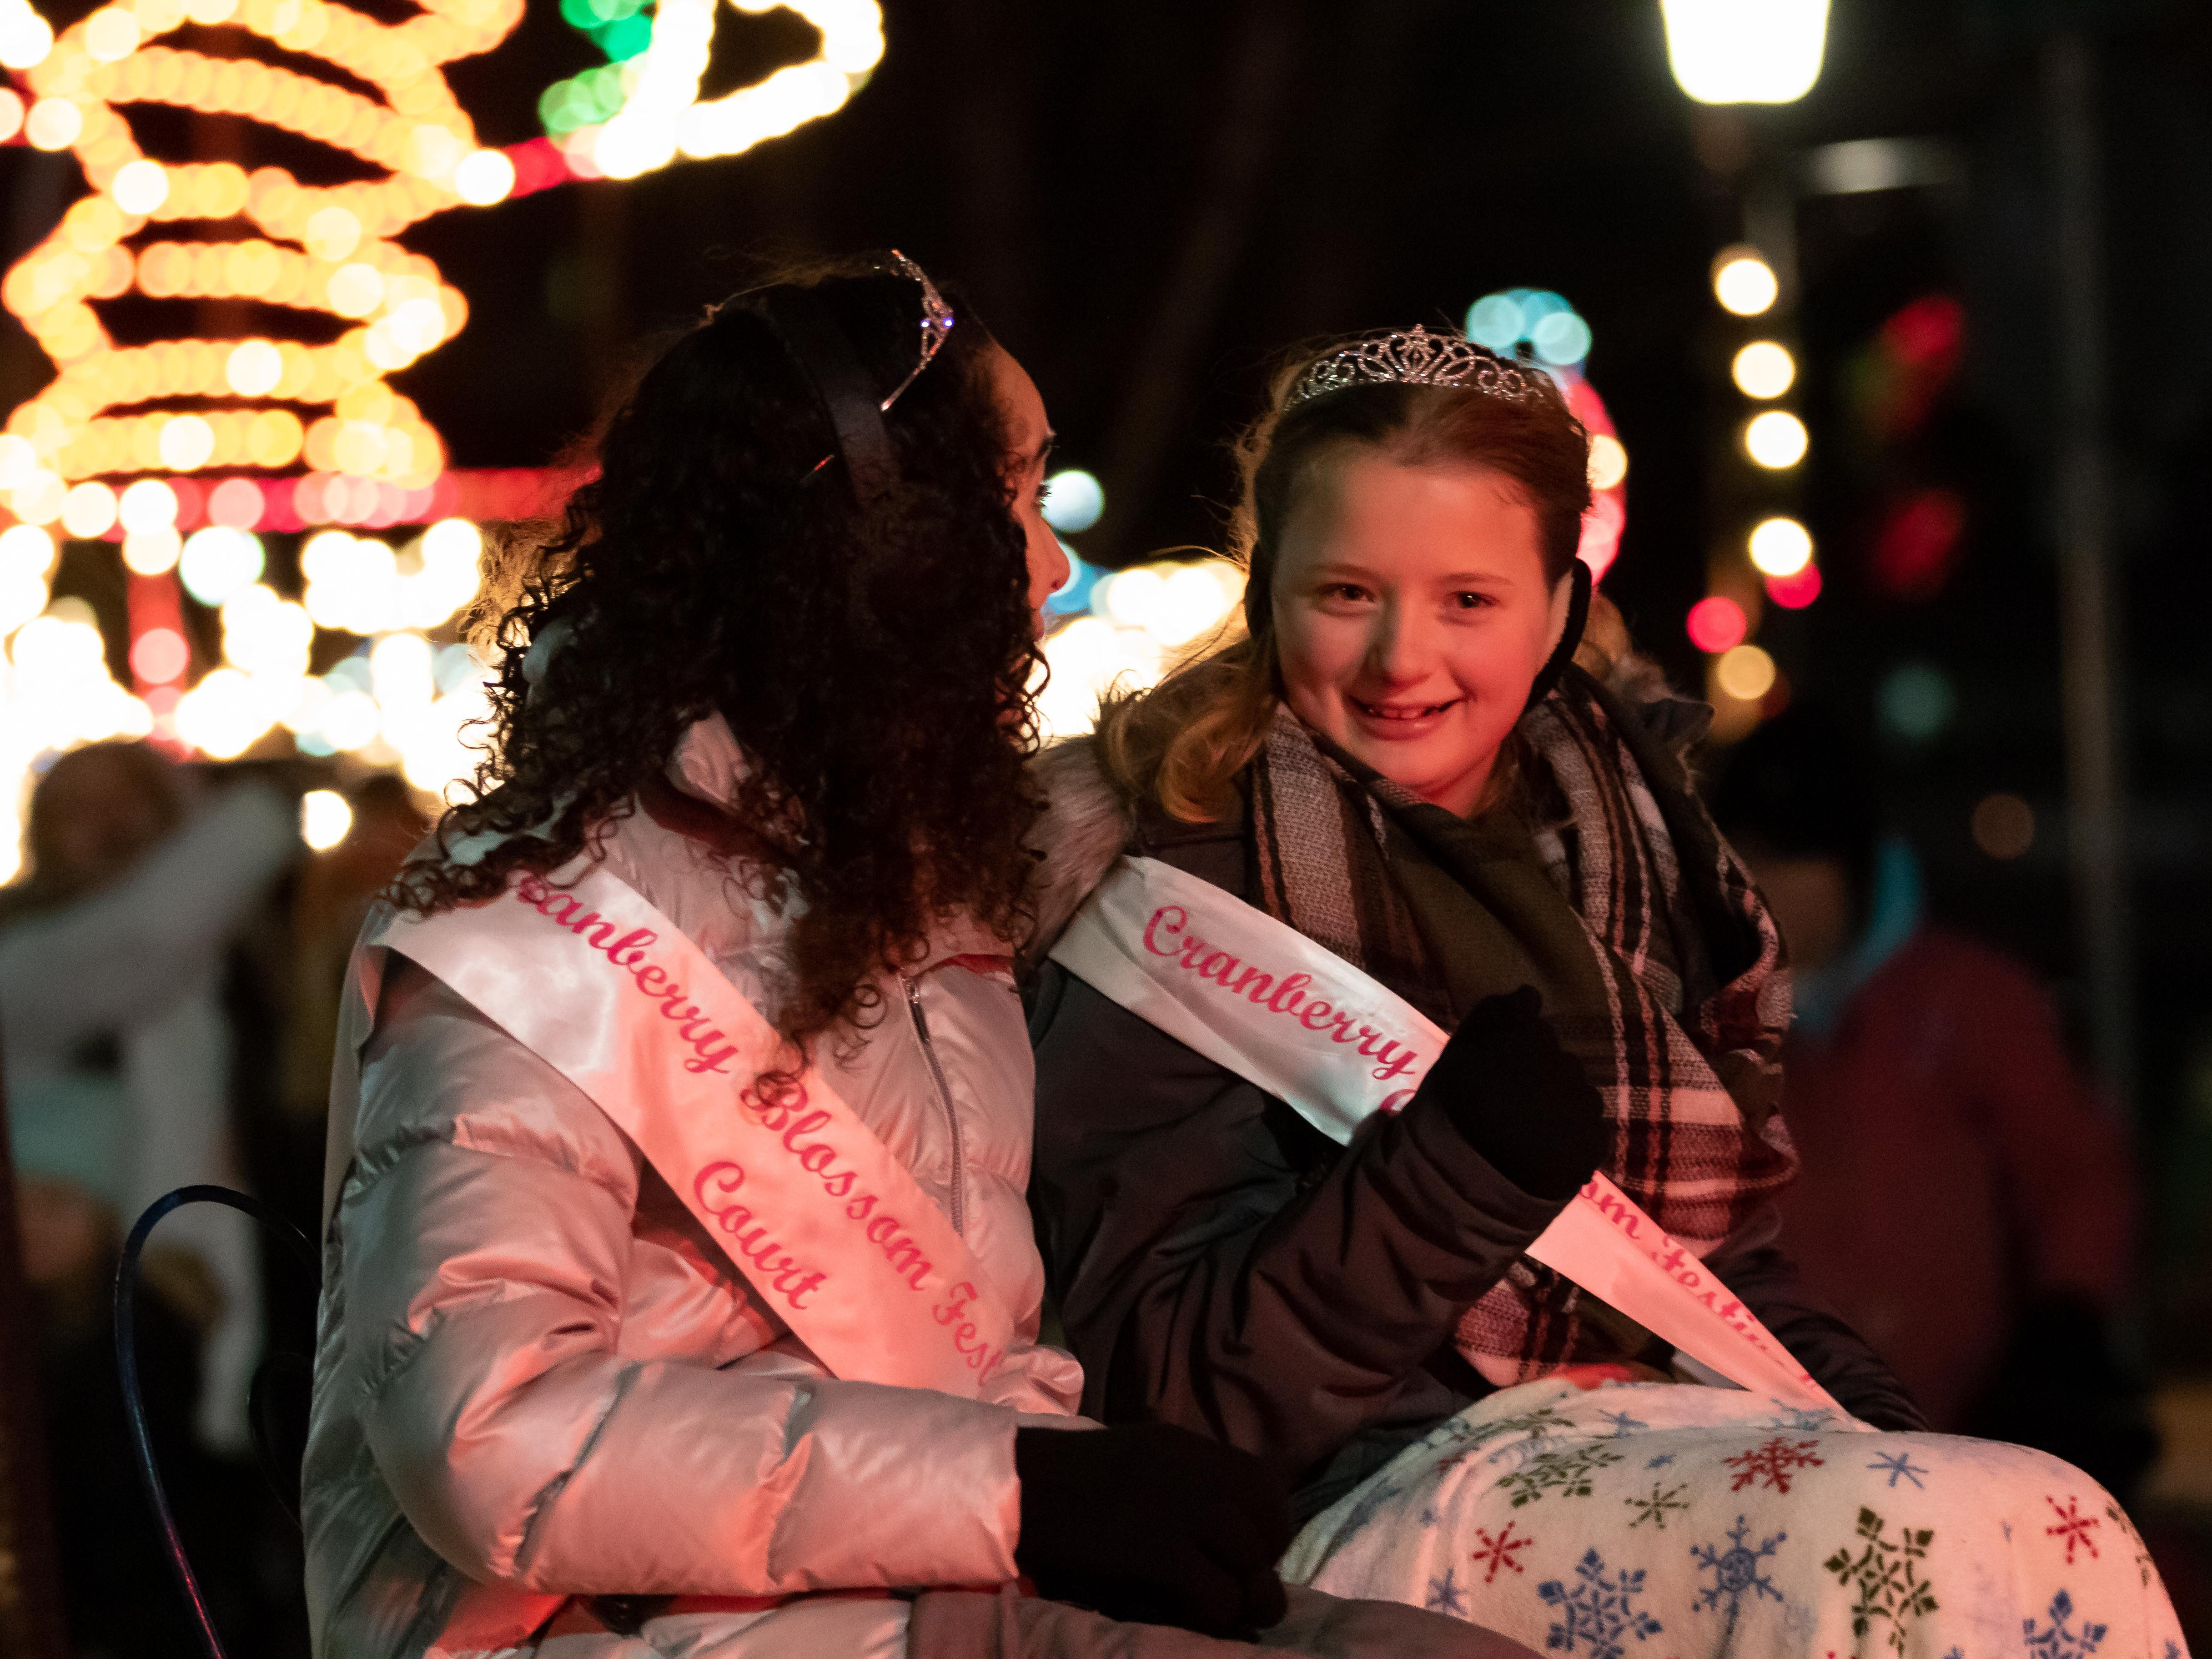 Members of the Cranberry Blossom Festival Court participate in the Rekindle the Spirit parade on Wednesday, Nov. 21, 2018, in downtown Wisconsin Rapids.